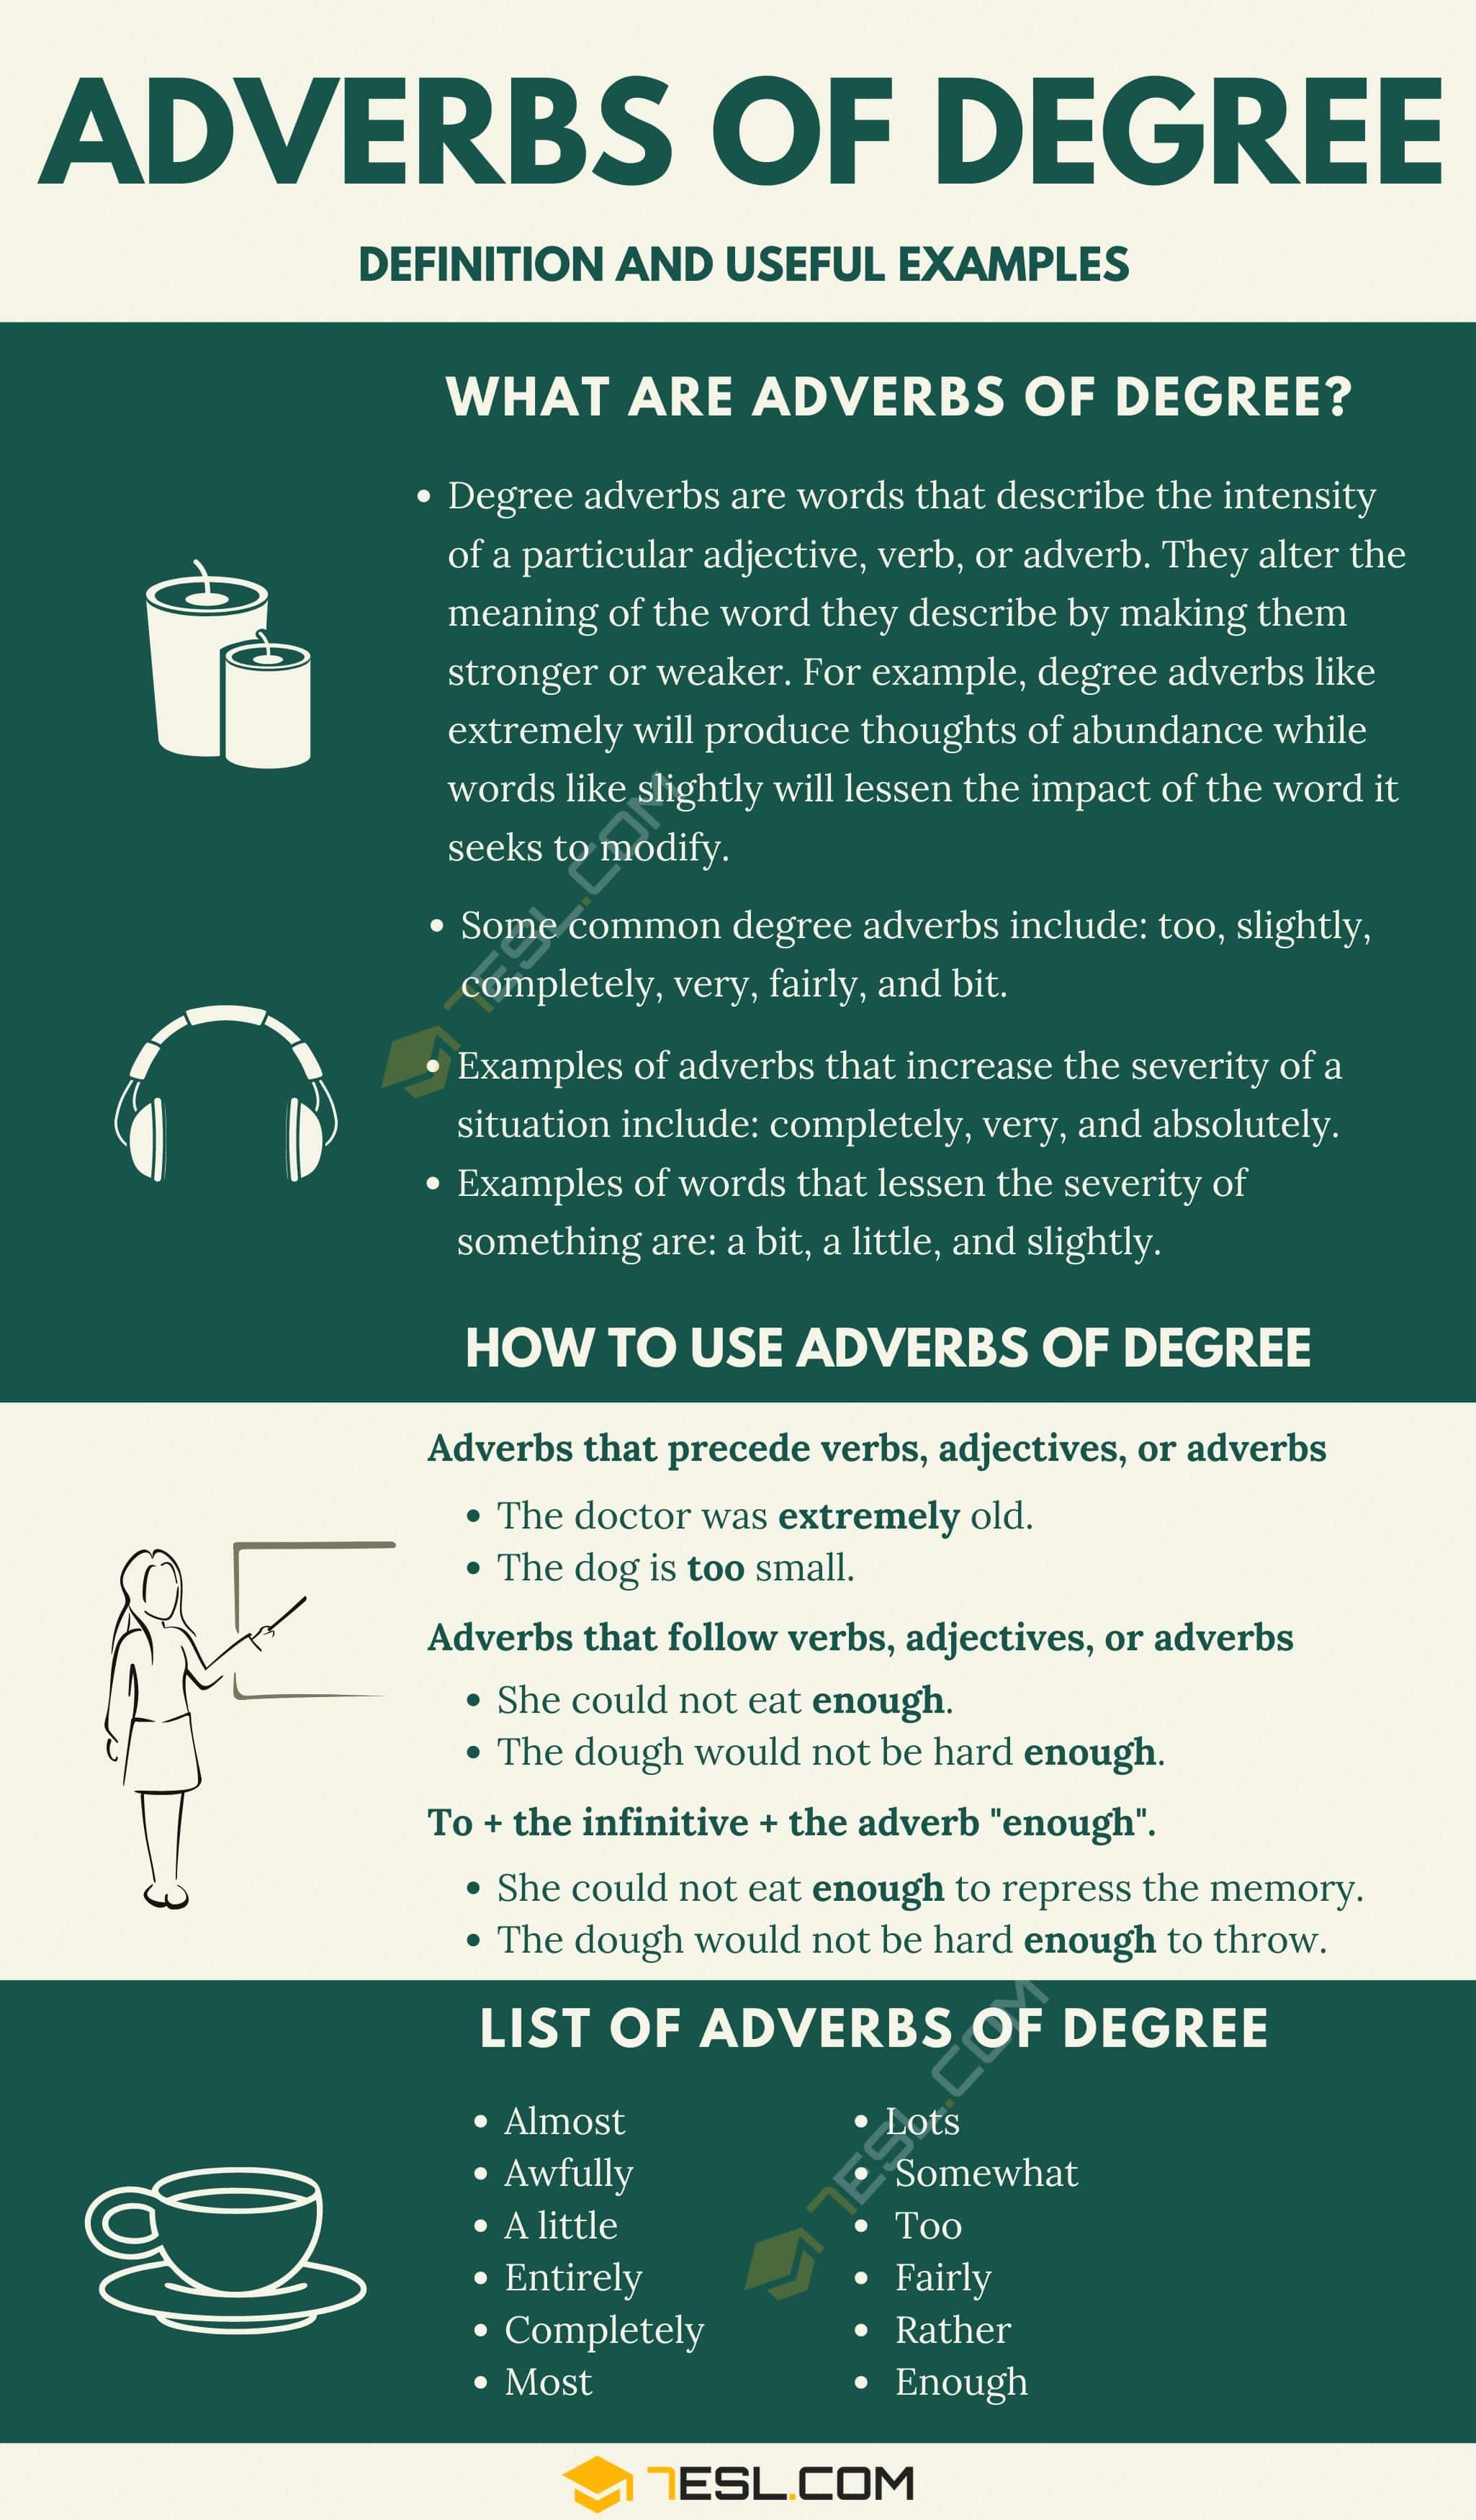 How to Use Adverbs of Degree with Useful Examples